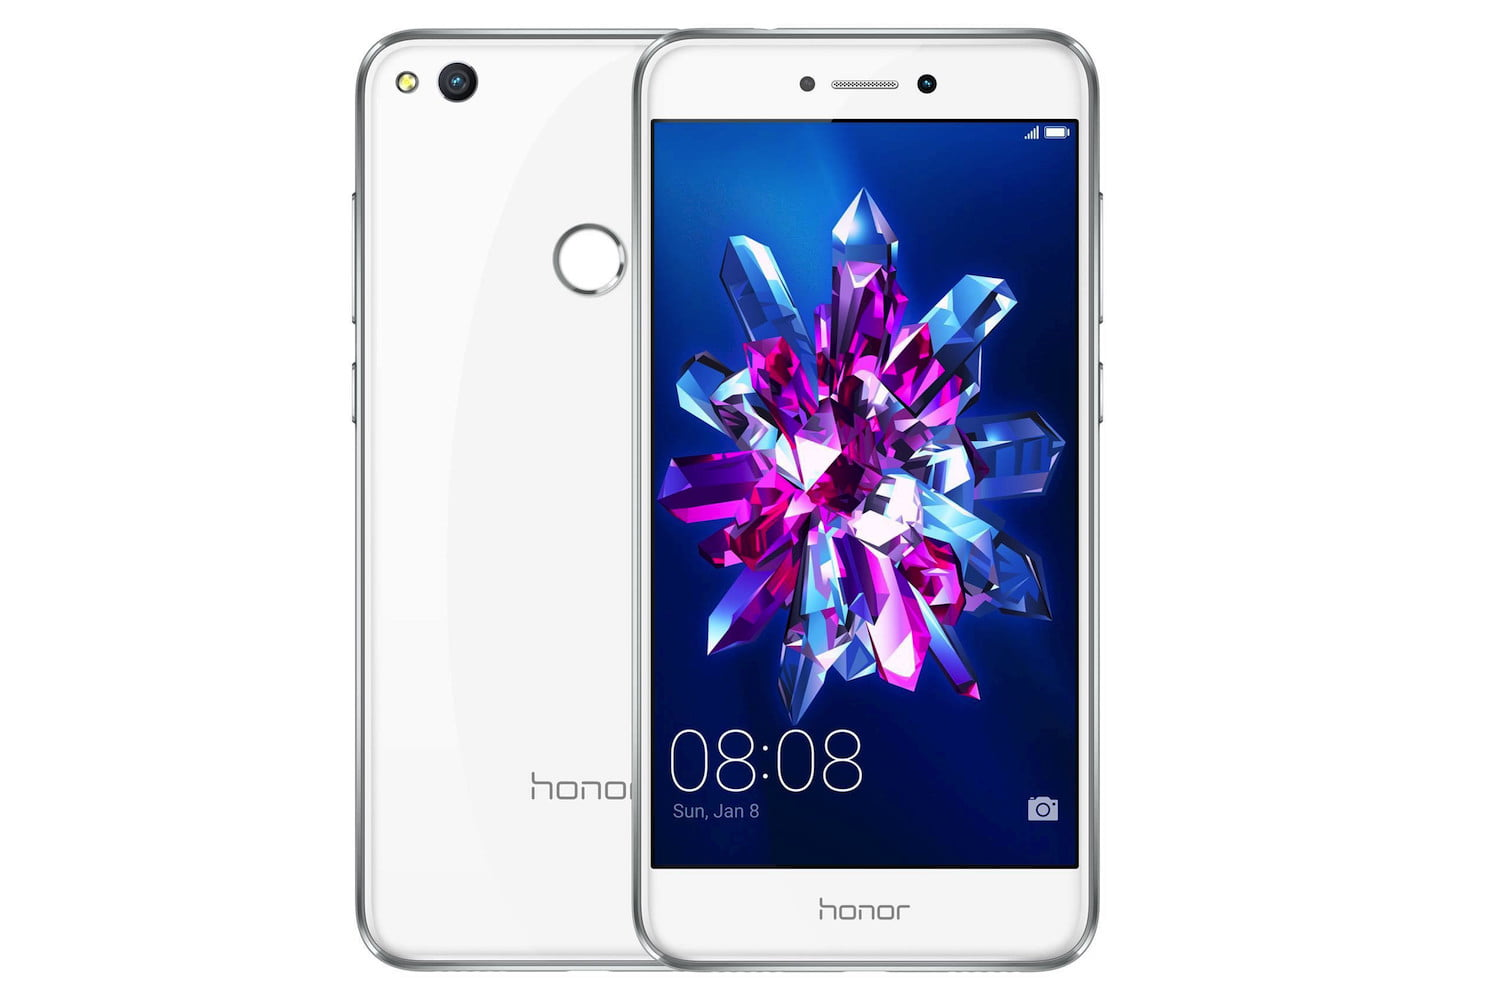 If you can't buy the Huawei P8 Lite 2017, the Honor 8 Lite ...